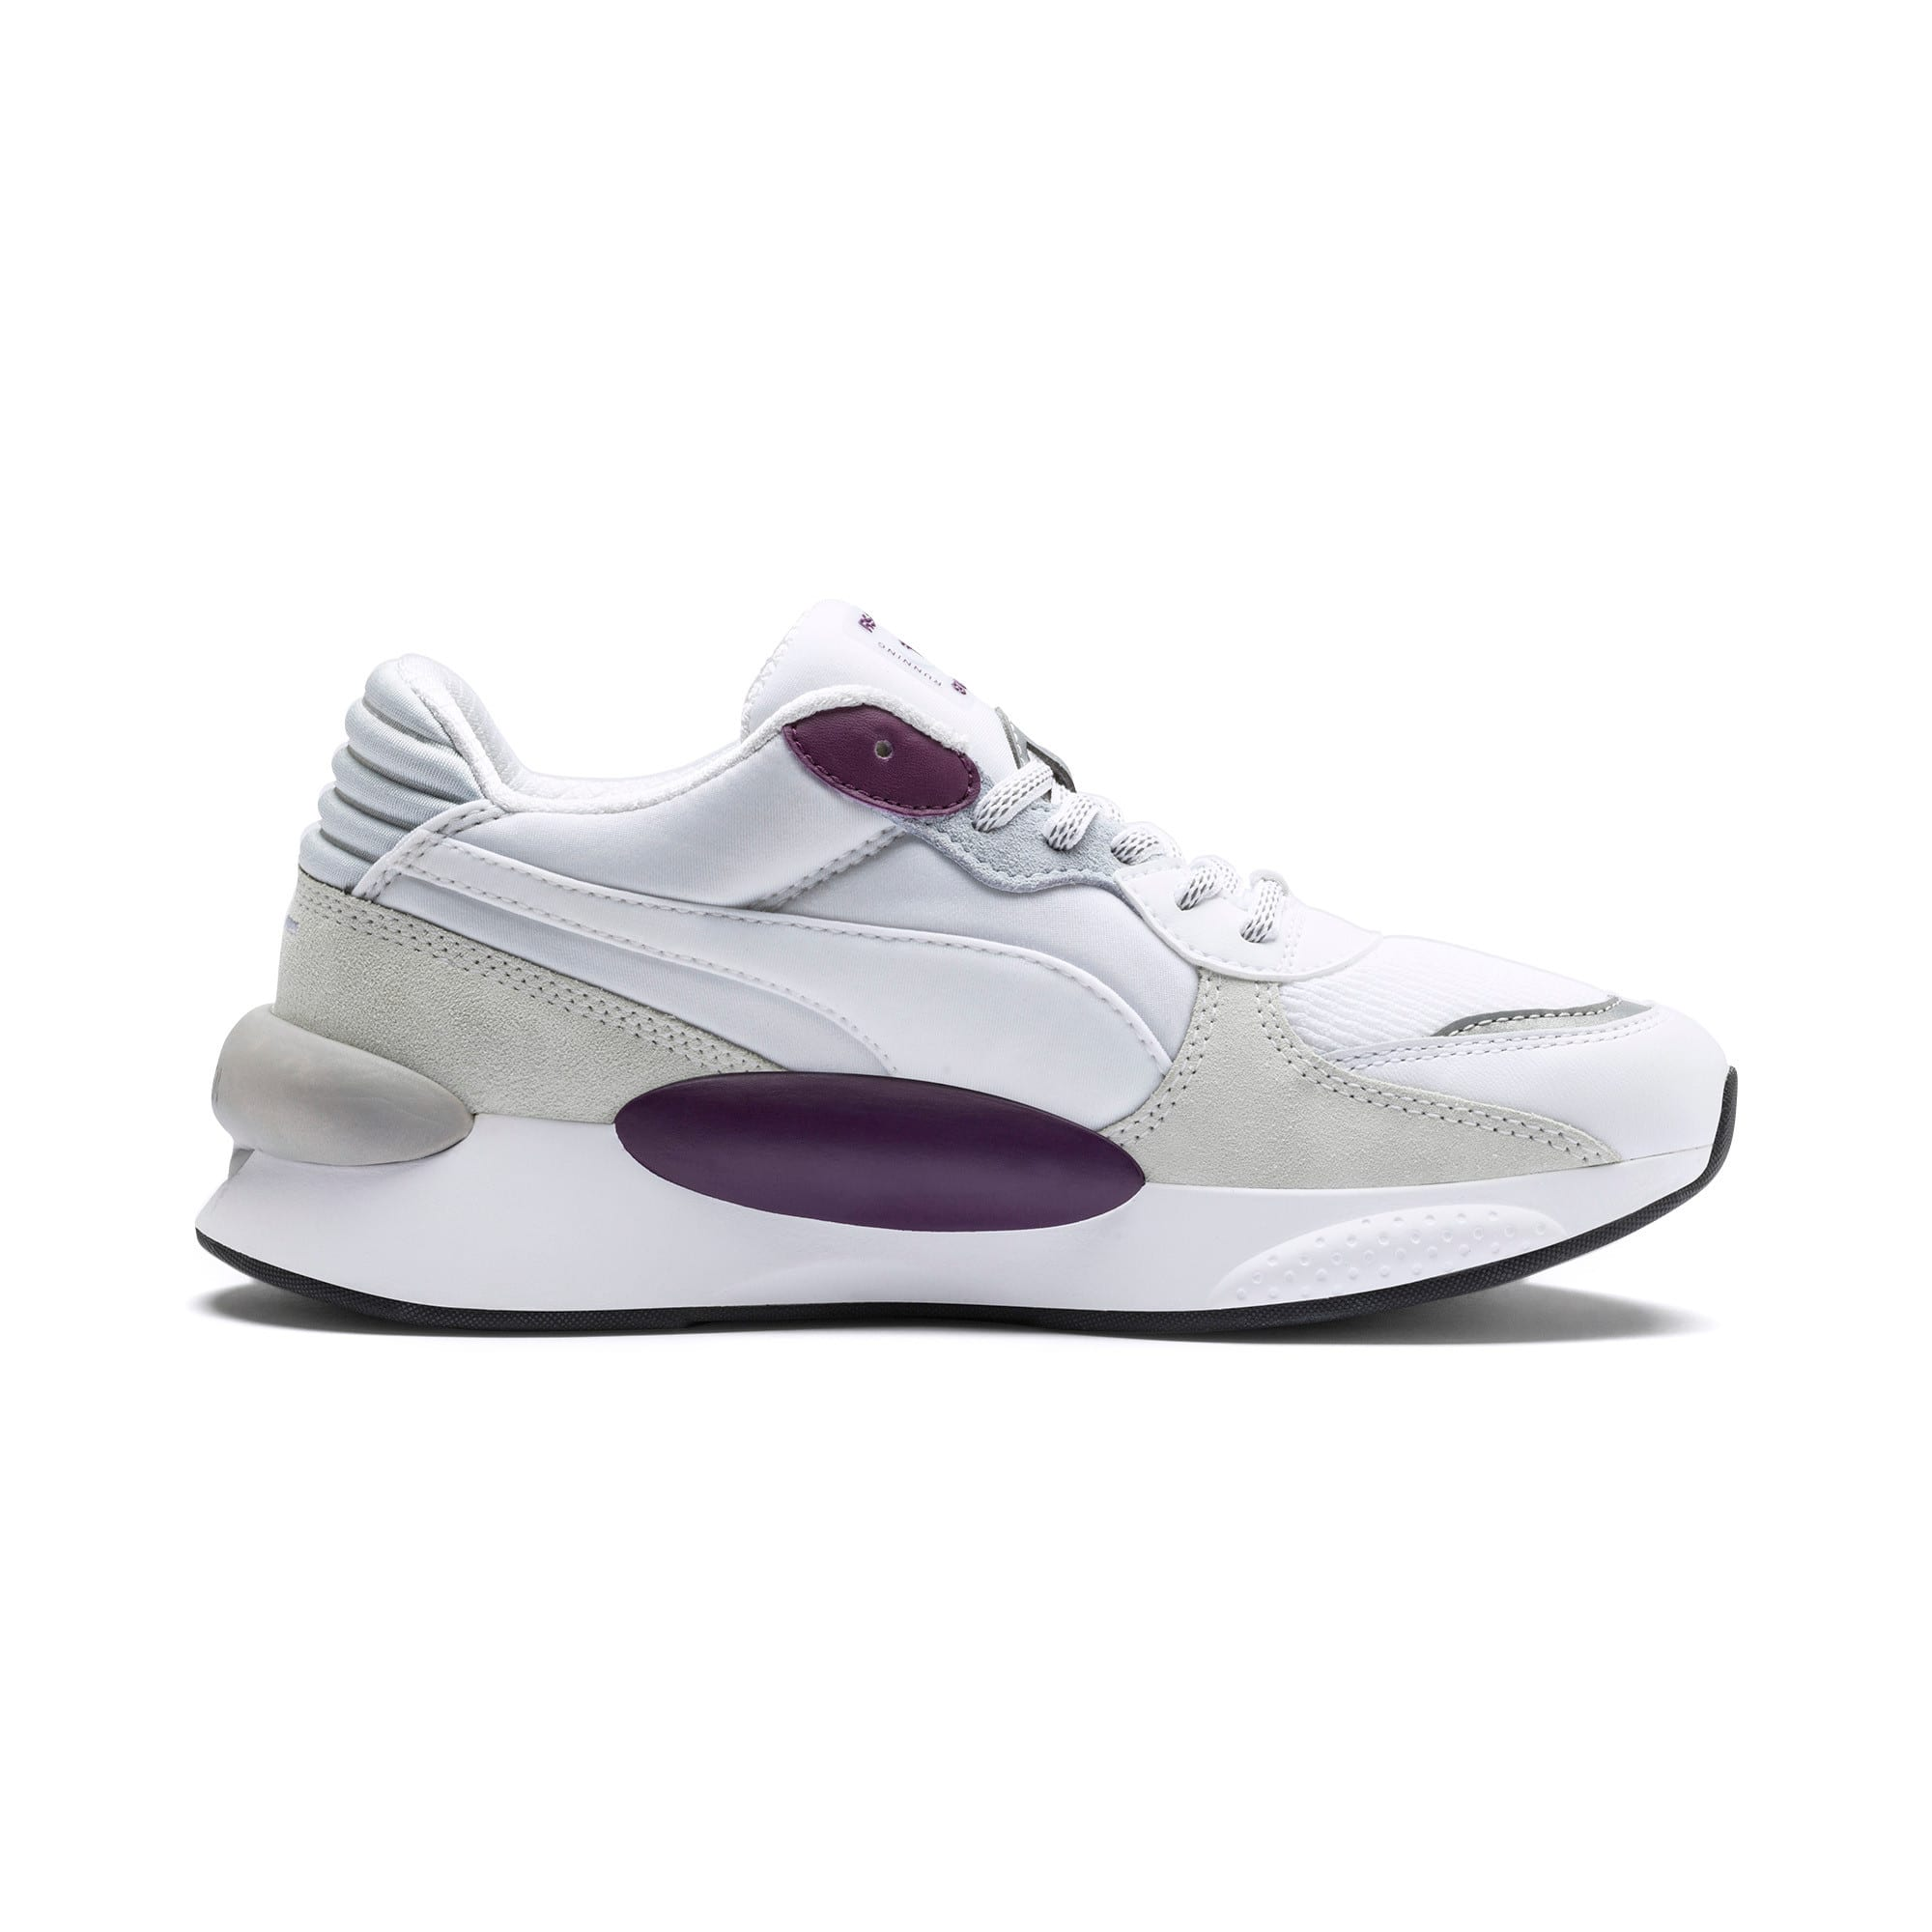 Thumbnail 6 of RS 9.8 Gravity Sneaker, Puma White-Plum Purple, medium